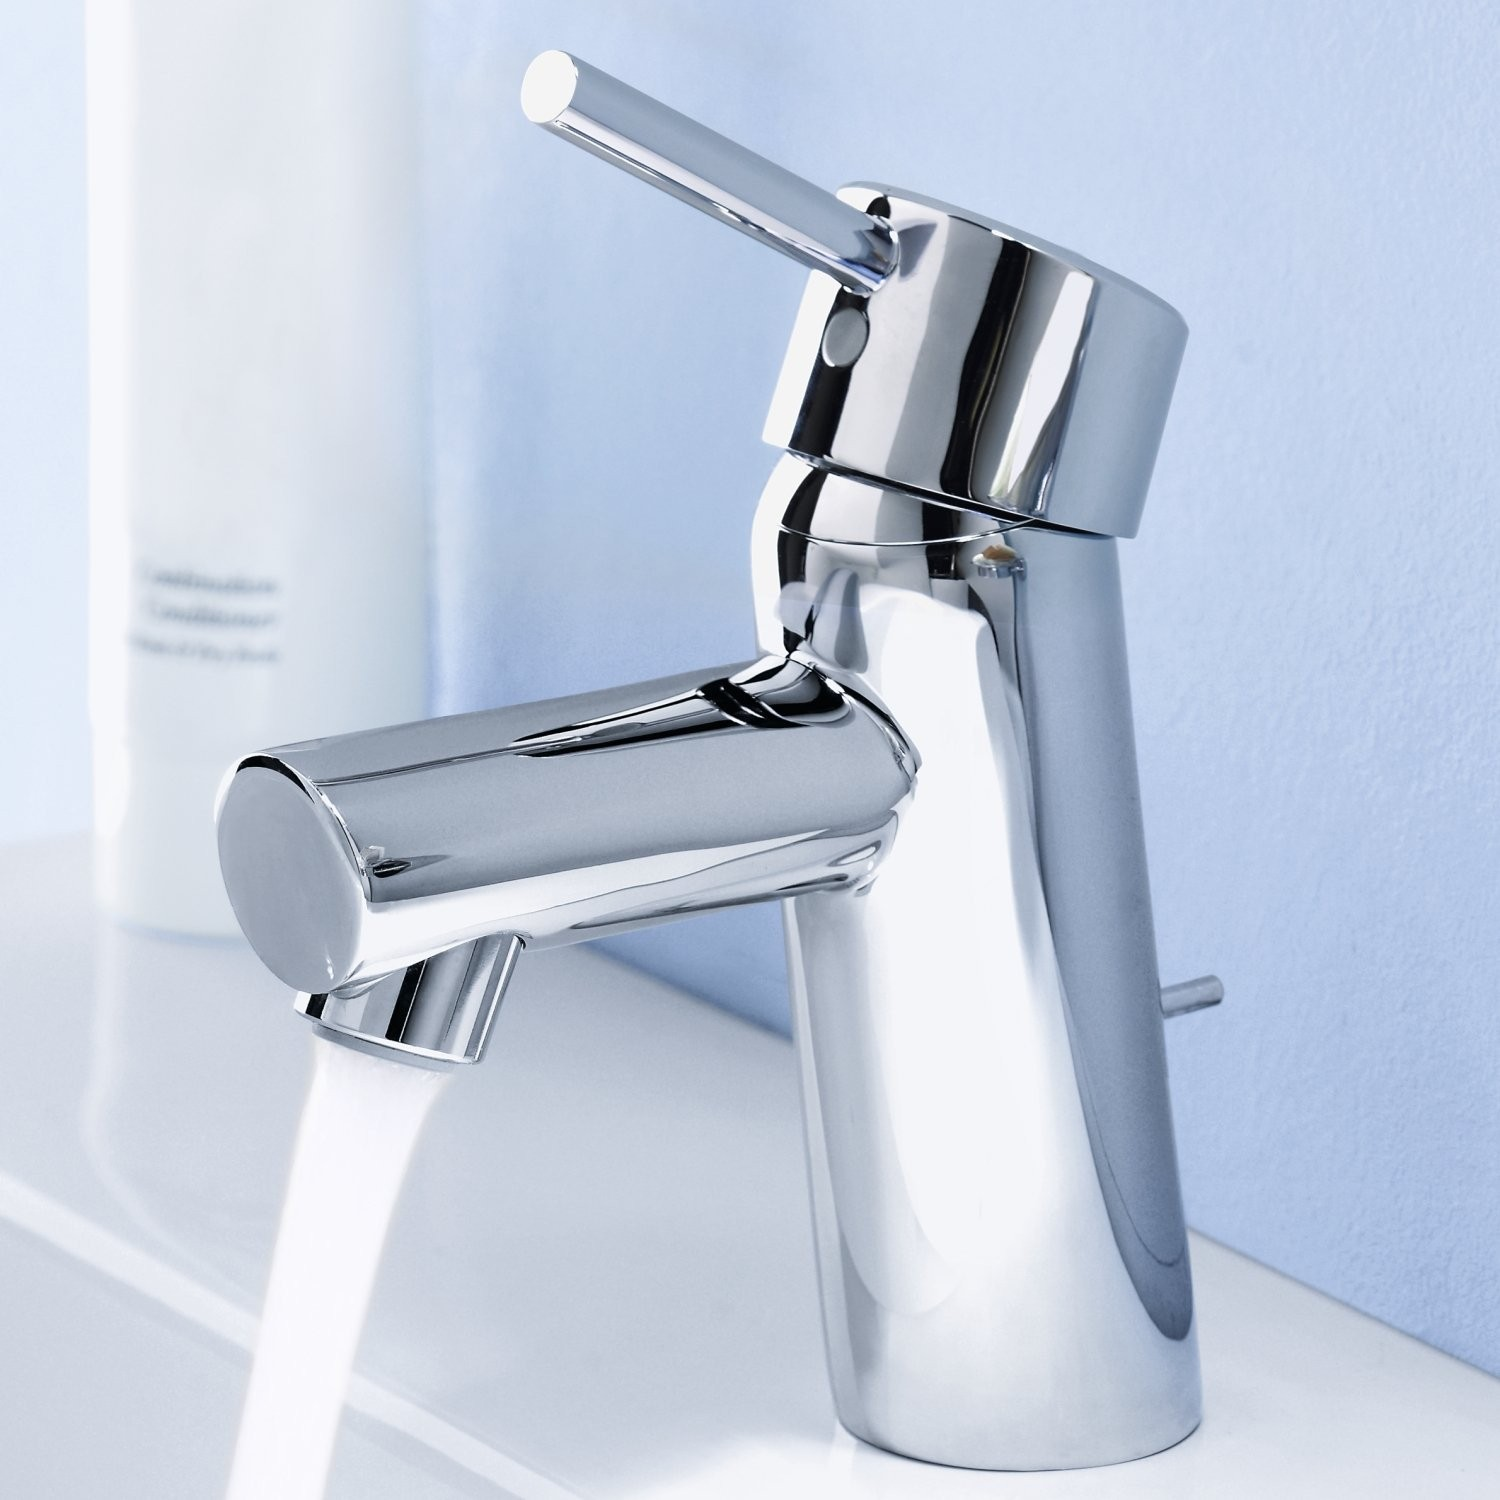 Awesome Grohe Bathroom Faucets Layout - Bathroom Design Ideas ...